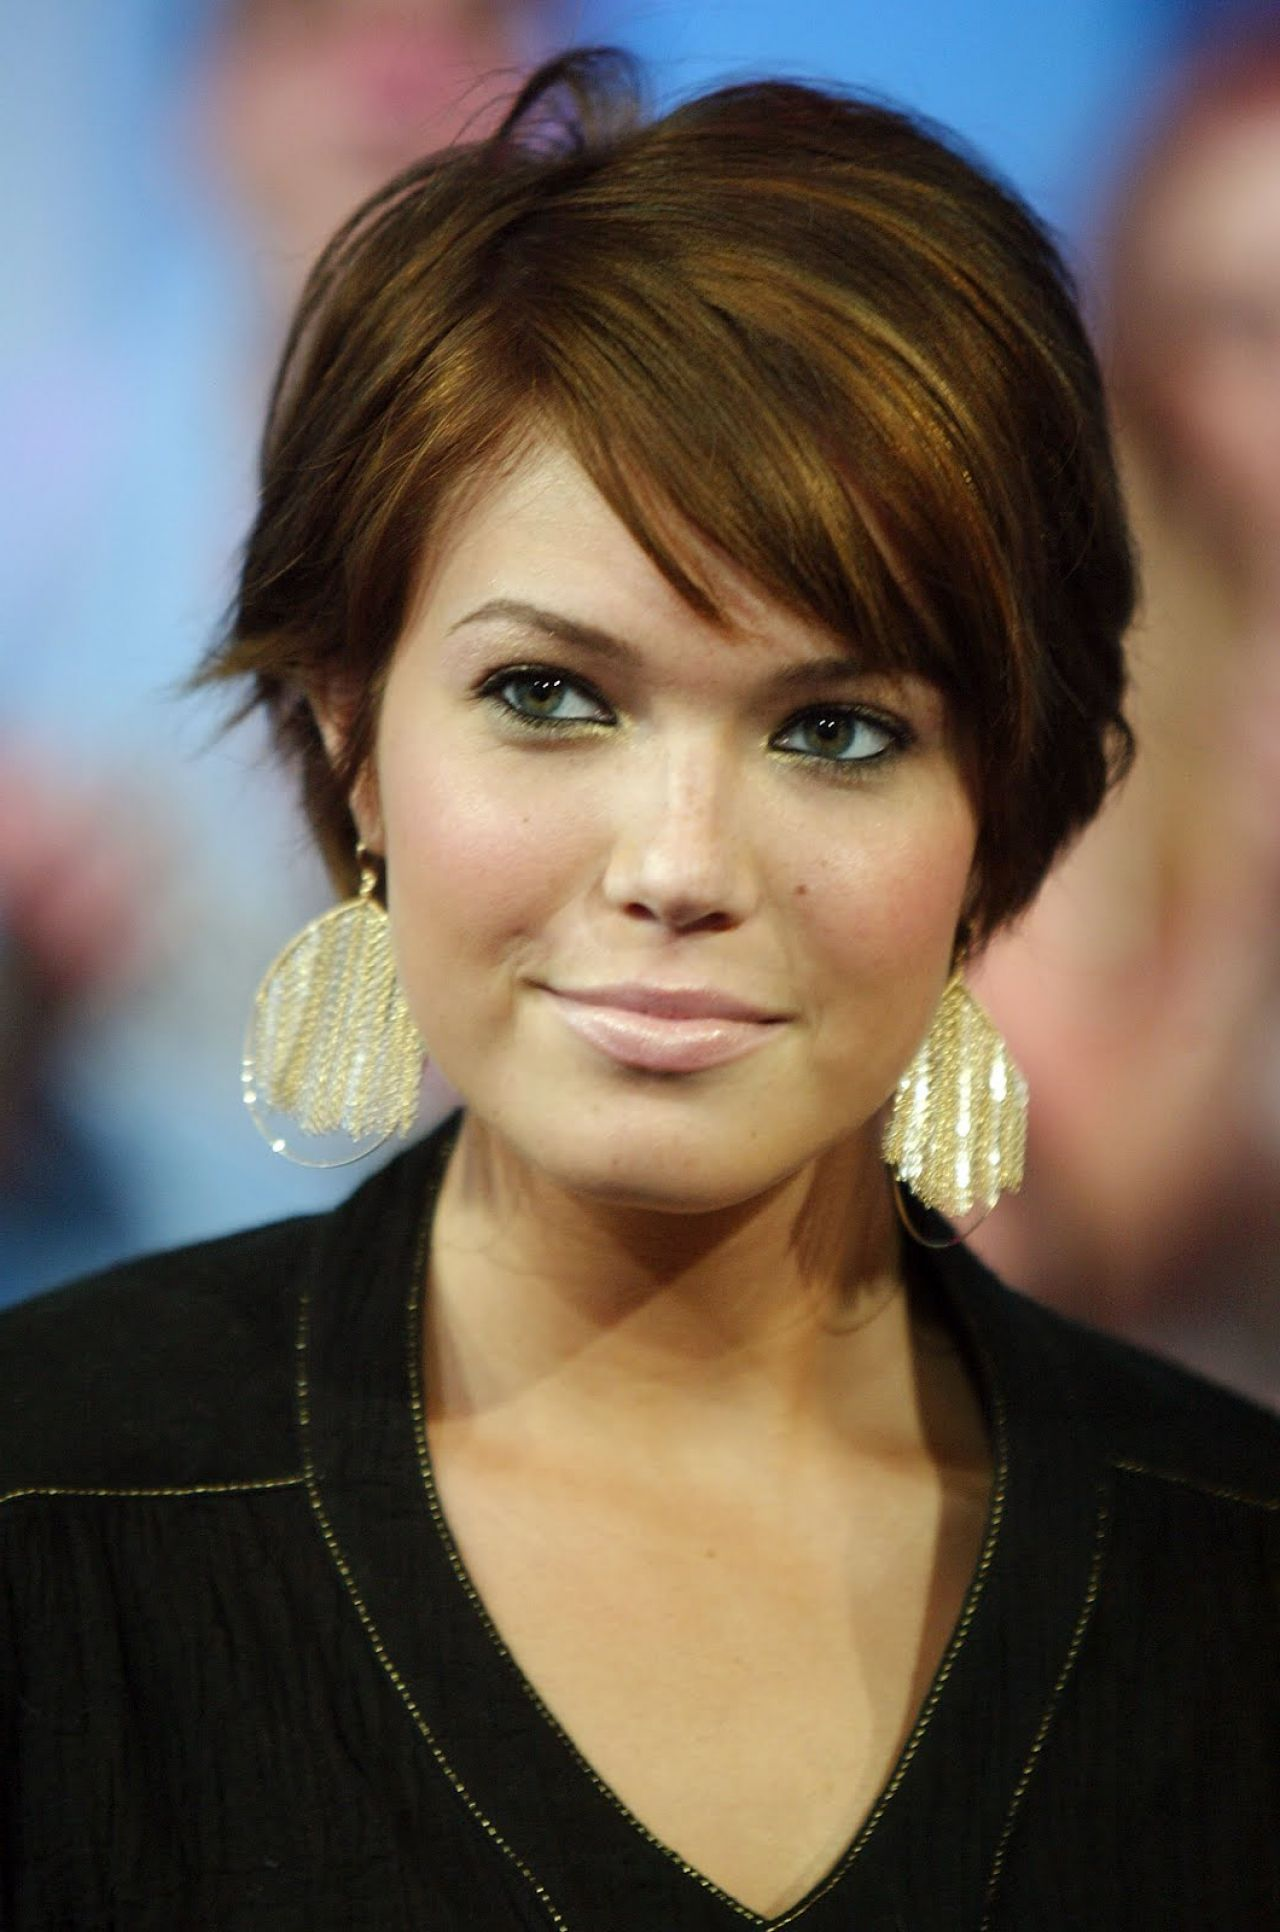 short hairstyles for square faces female - google search